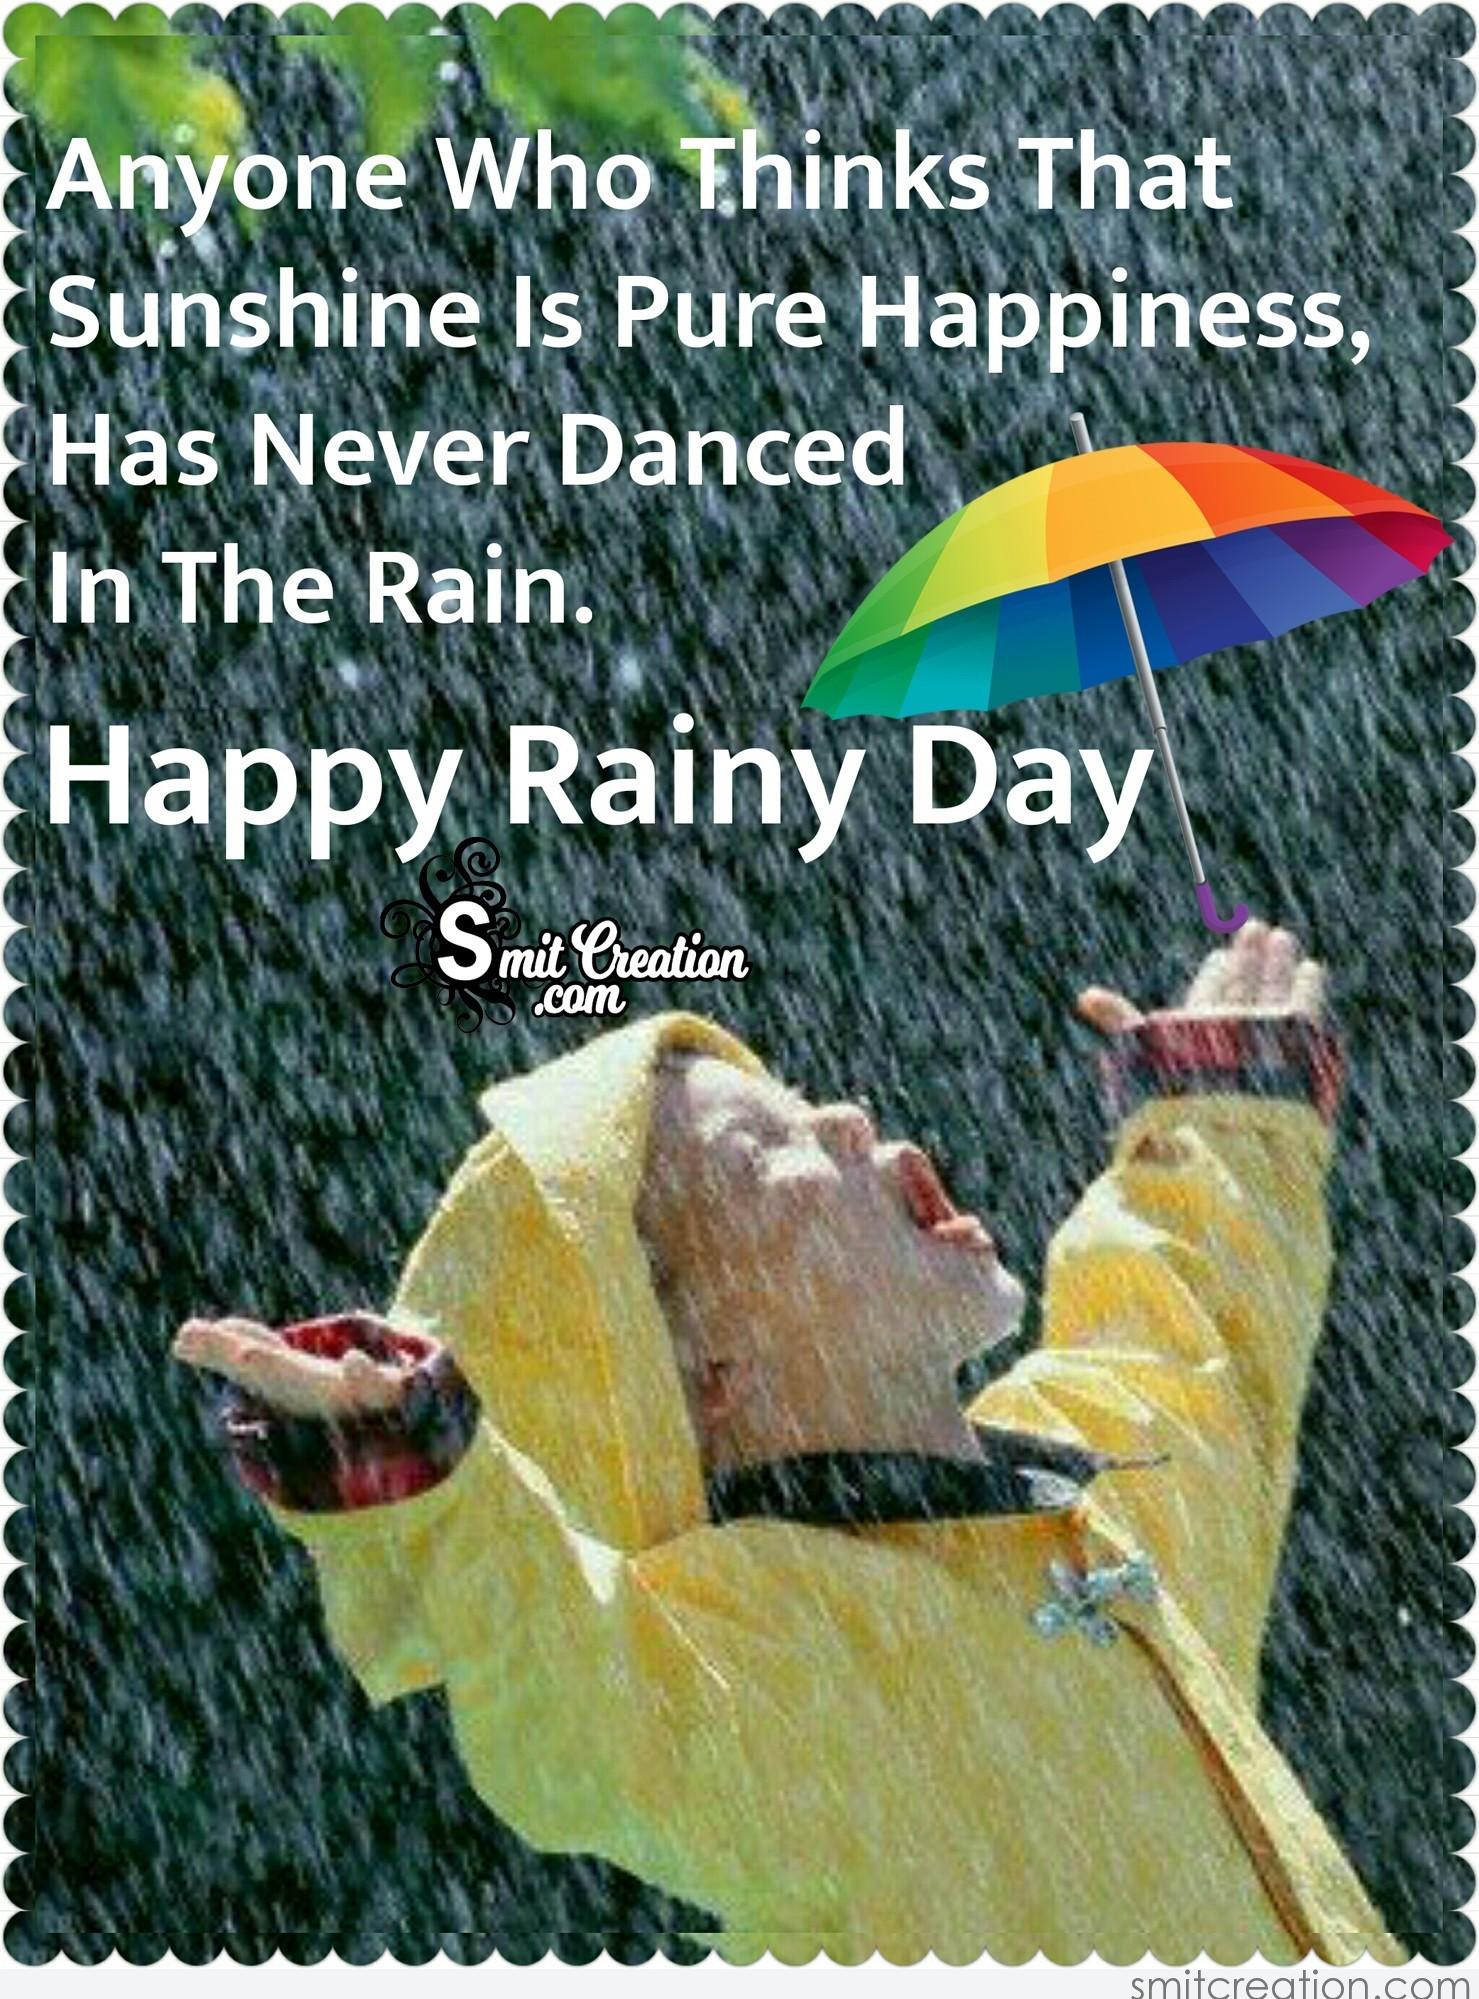 Happy rainy day pictures and graphics smitcreation page 2 anyone who thinks that sunshine is pure happiness has never danced in the rain happy rainy day m4hsunfo